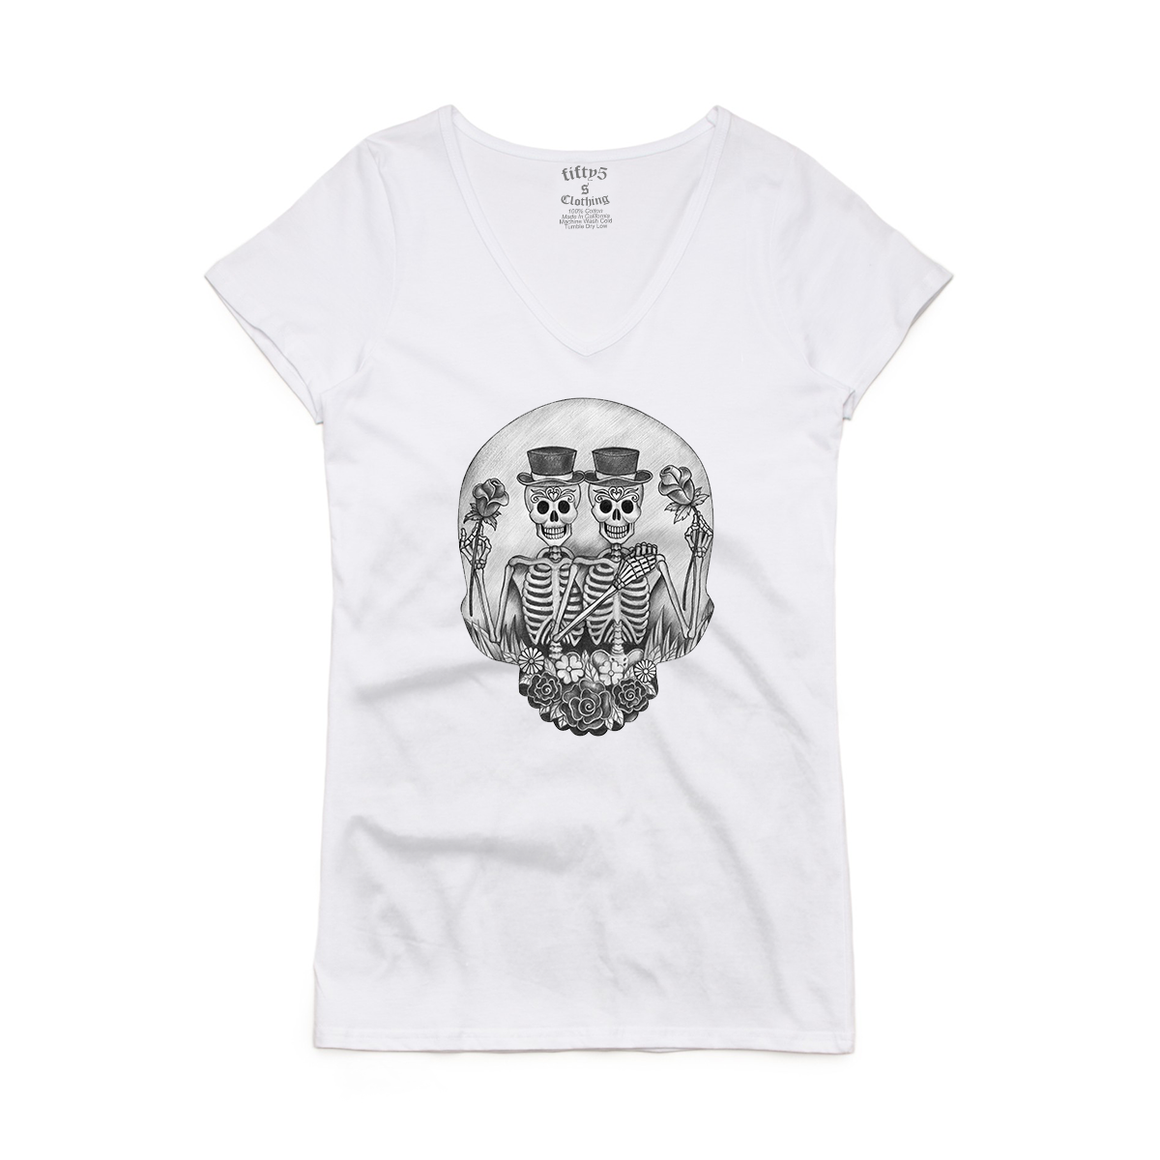 Gemini Skull Women's Bevel V Neck T-Shirt